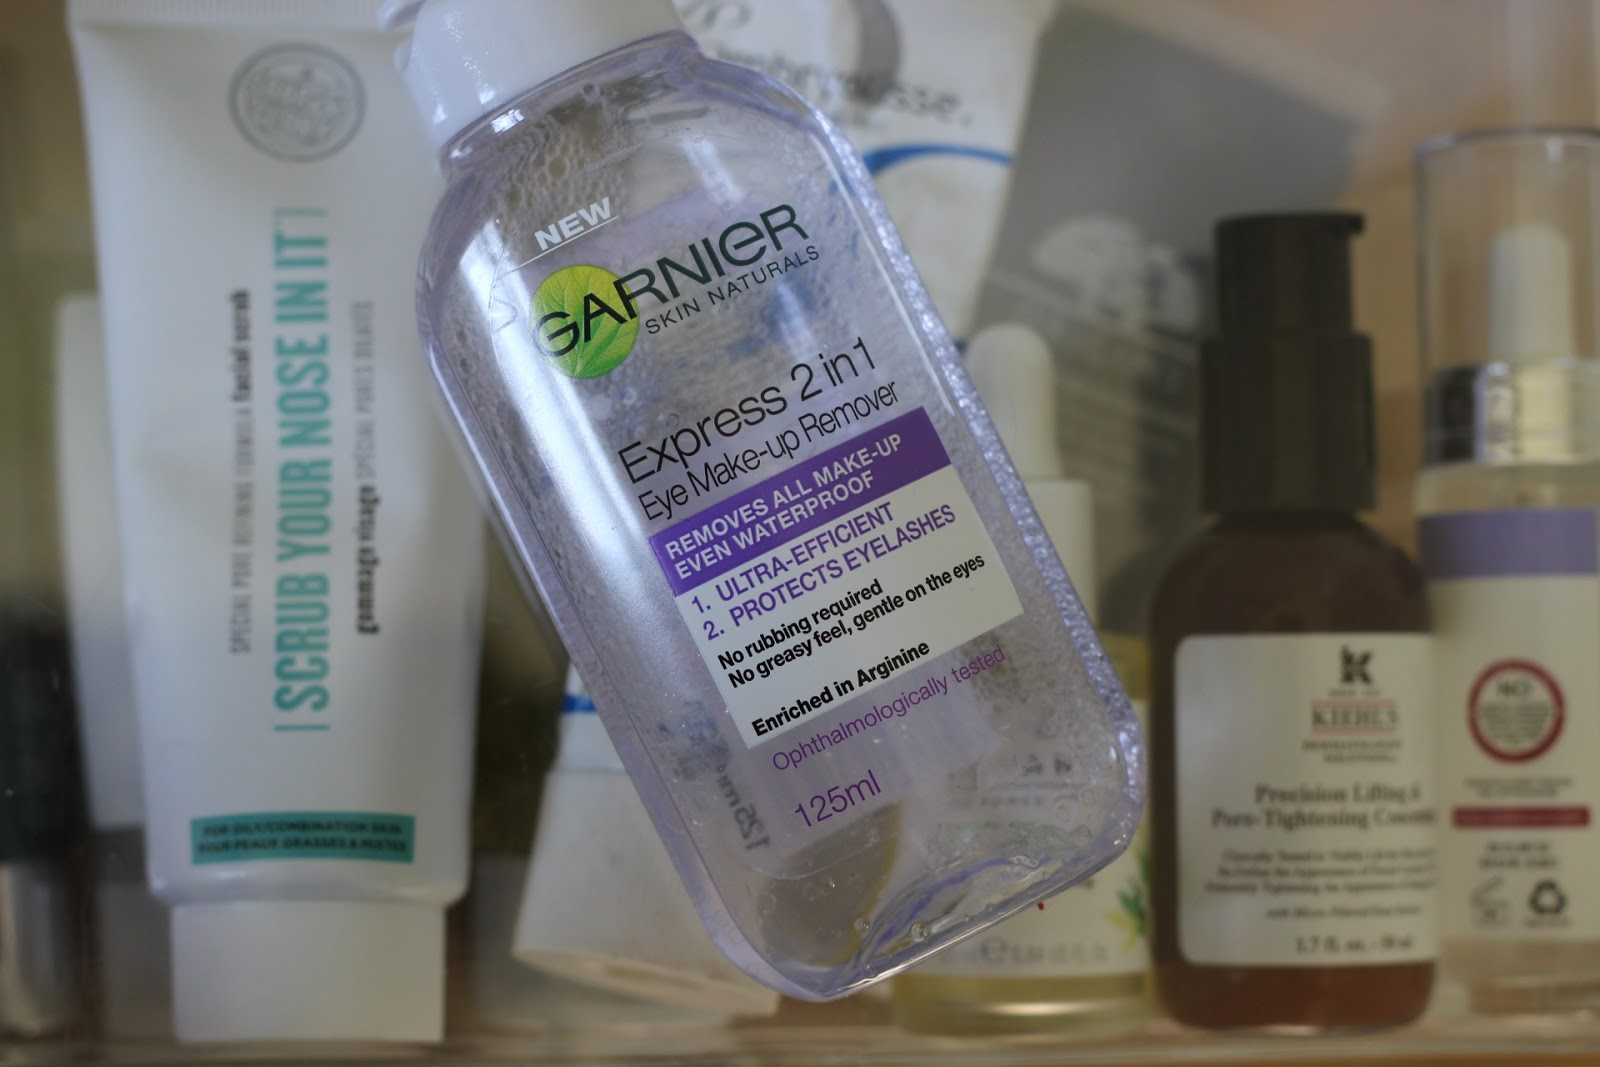 Garnier Express 2 In 1 Eye Makeup Remover